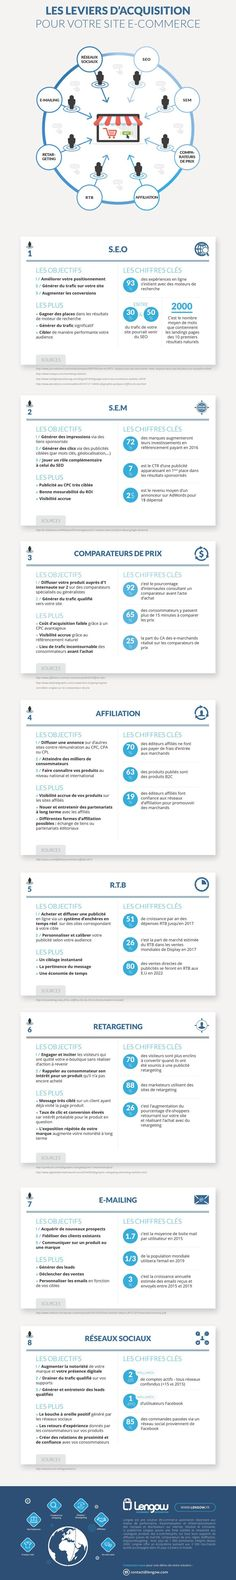 [Infographie] Les leviers d'acquisition les plus performants pour les sites e-commerce ? : Capitaine Commerce 3.6